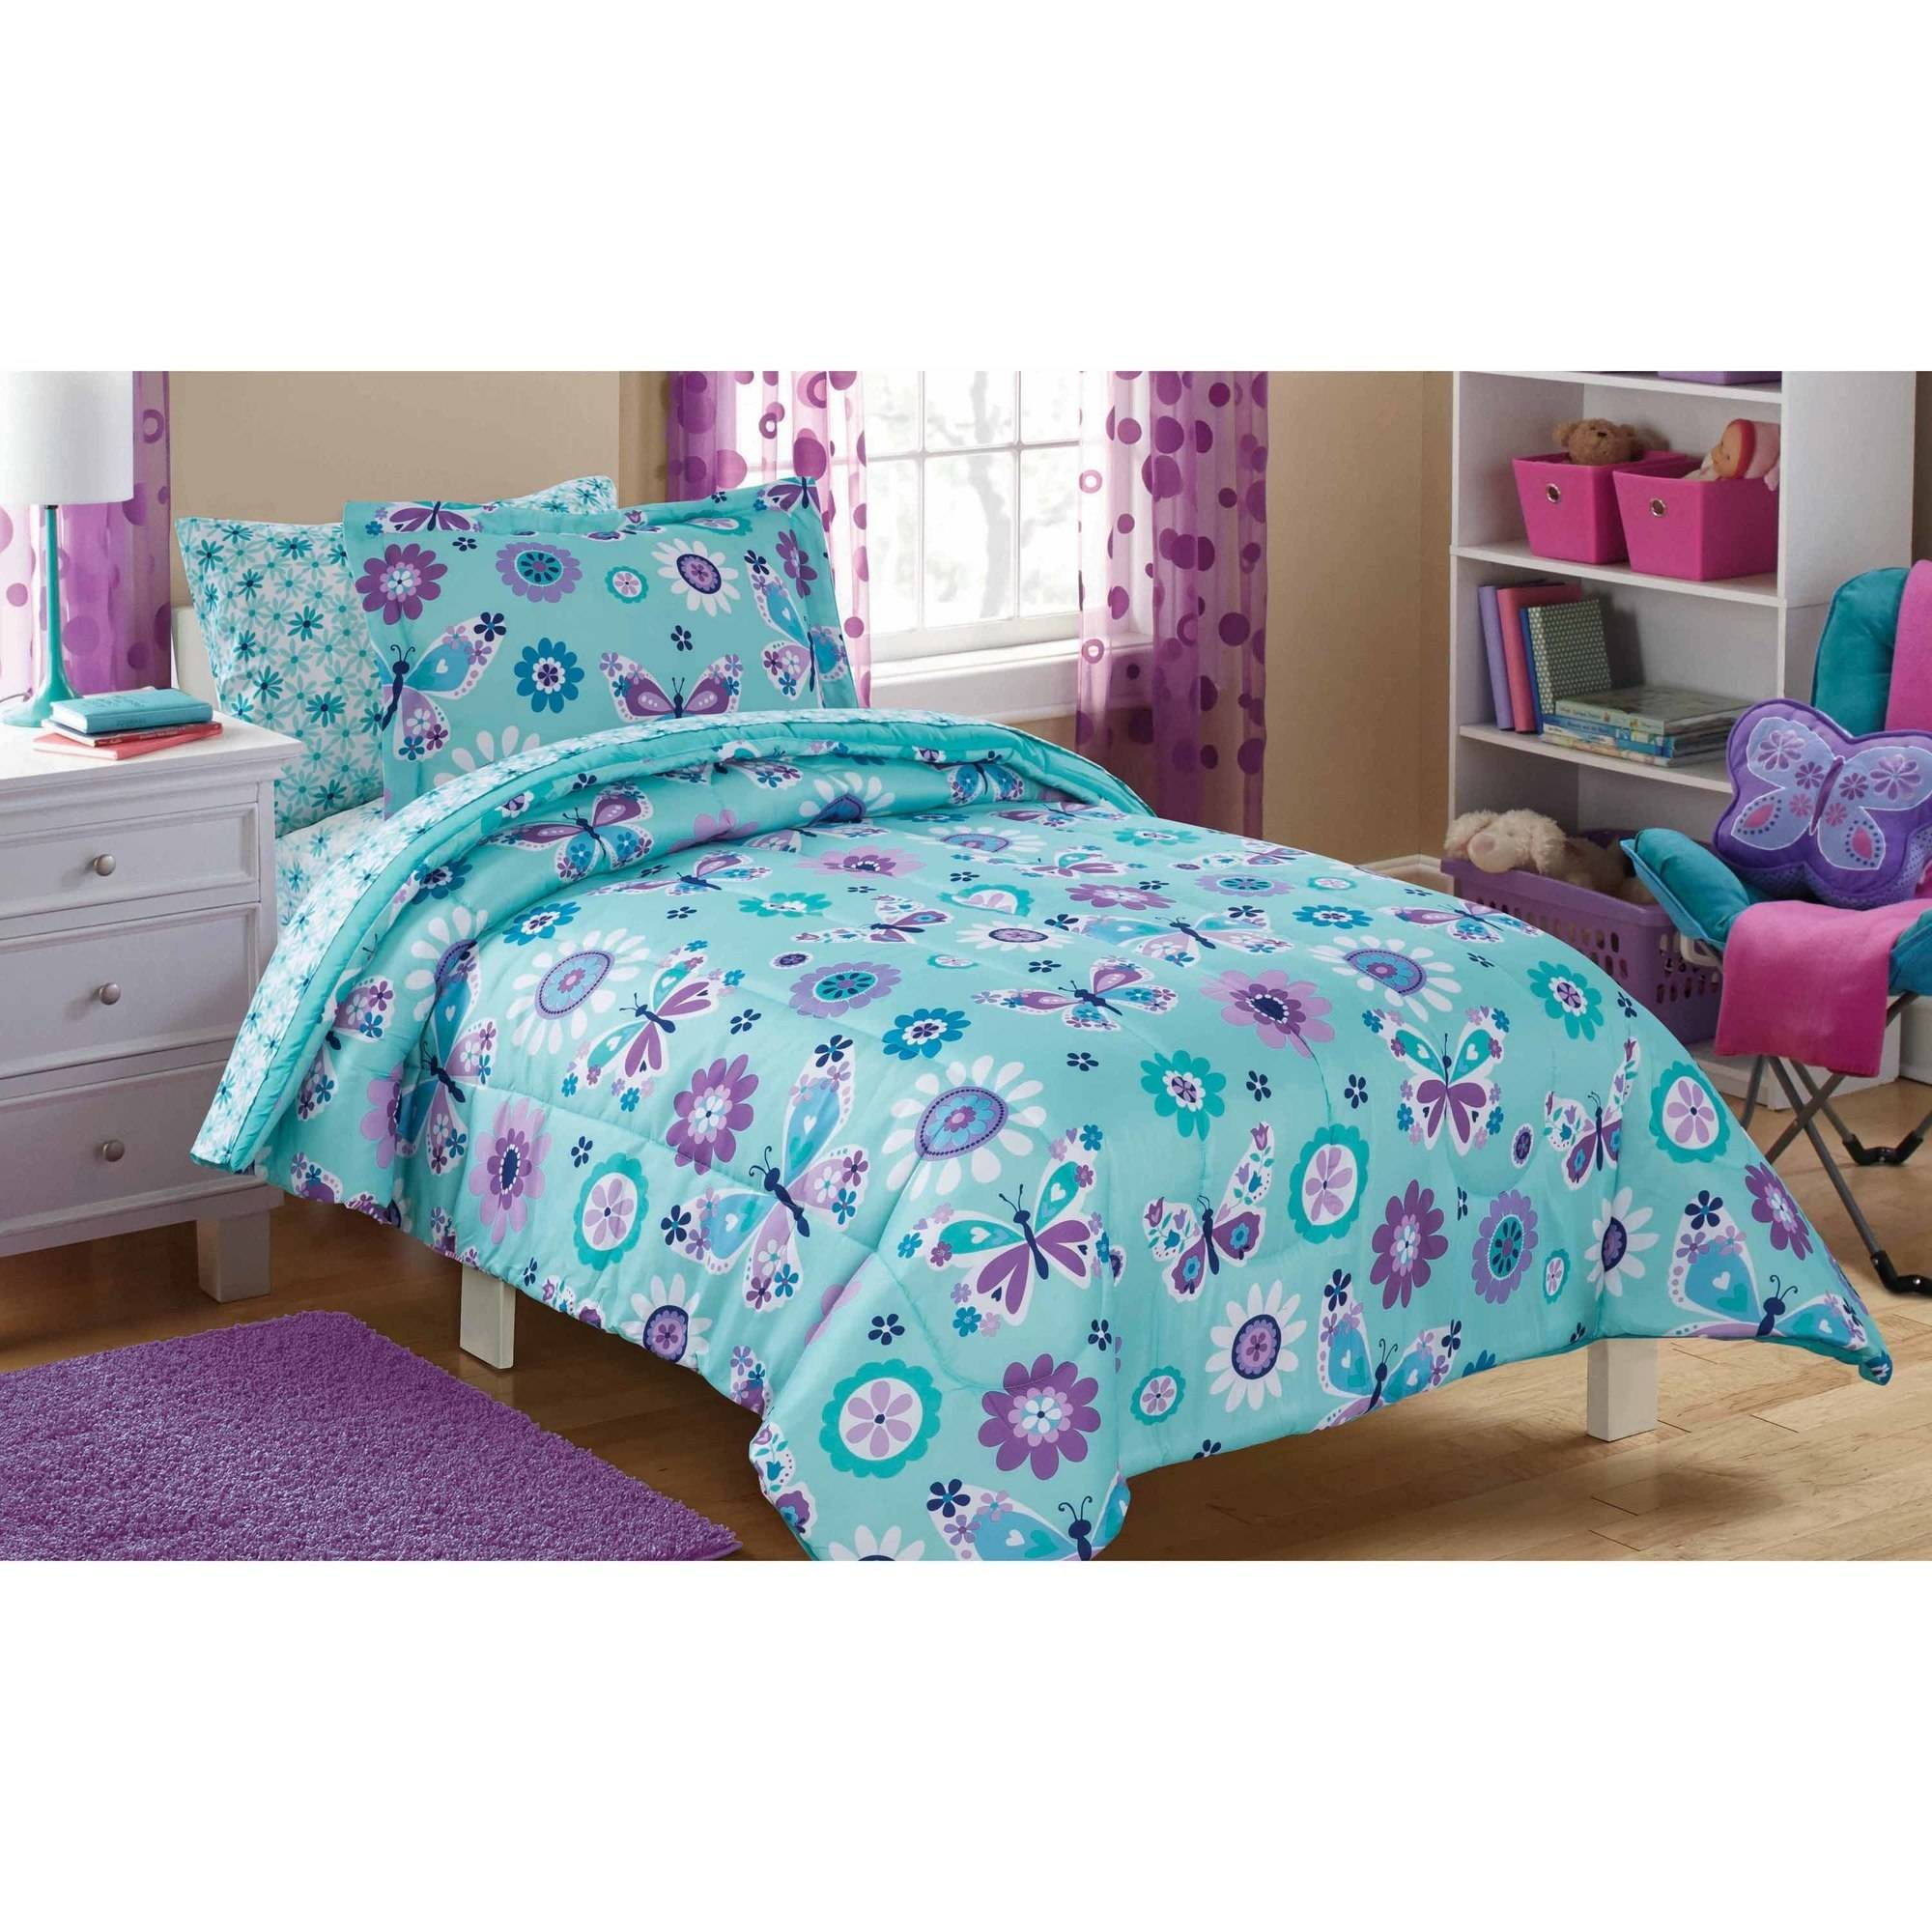 with in on polyester unicorn tour flying sets dreamlike set bedding from garden warm home wings bed item horse purple